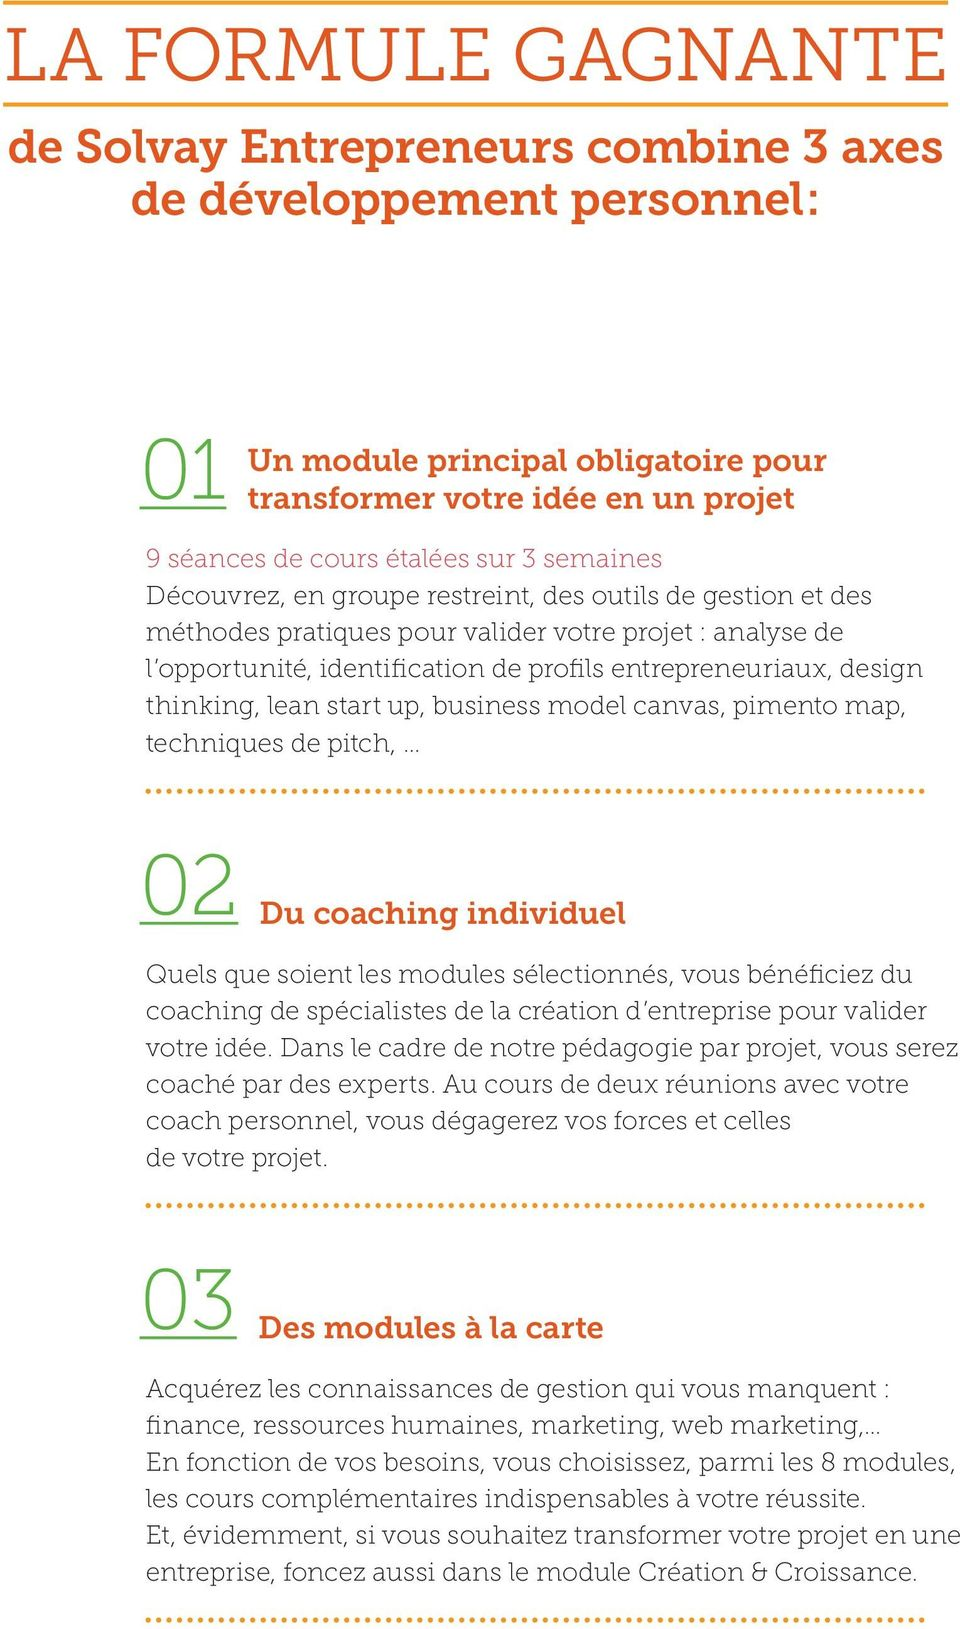 thinking, lean start up, business model canvas, pimento map, techniques de pitch, 02 Du coaching individuel Quels que soient les modules sélectionnés, vous bénéficiez du coaching de spécialistes de